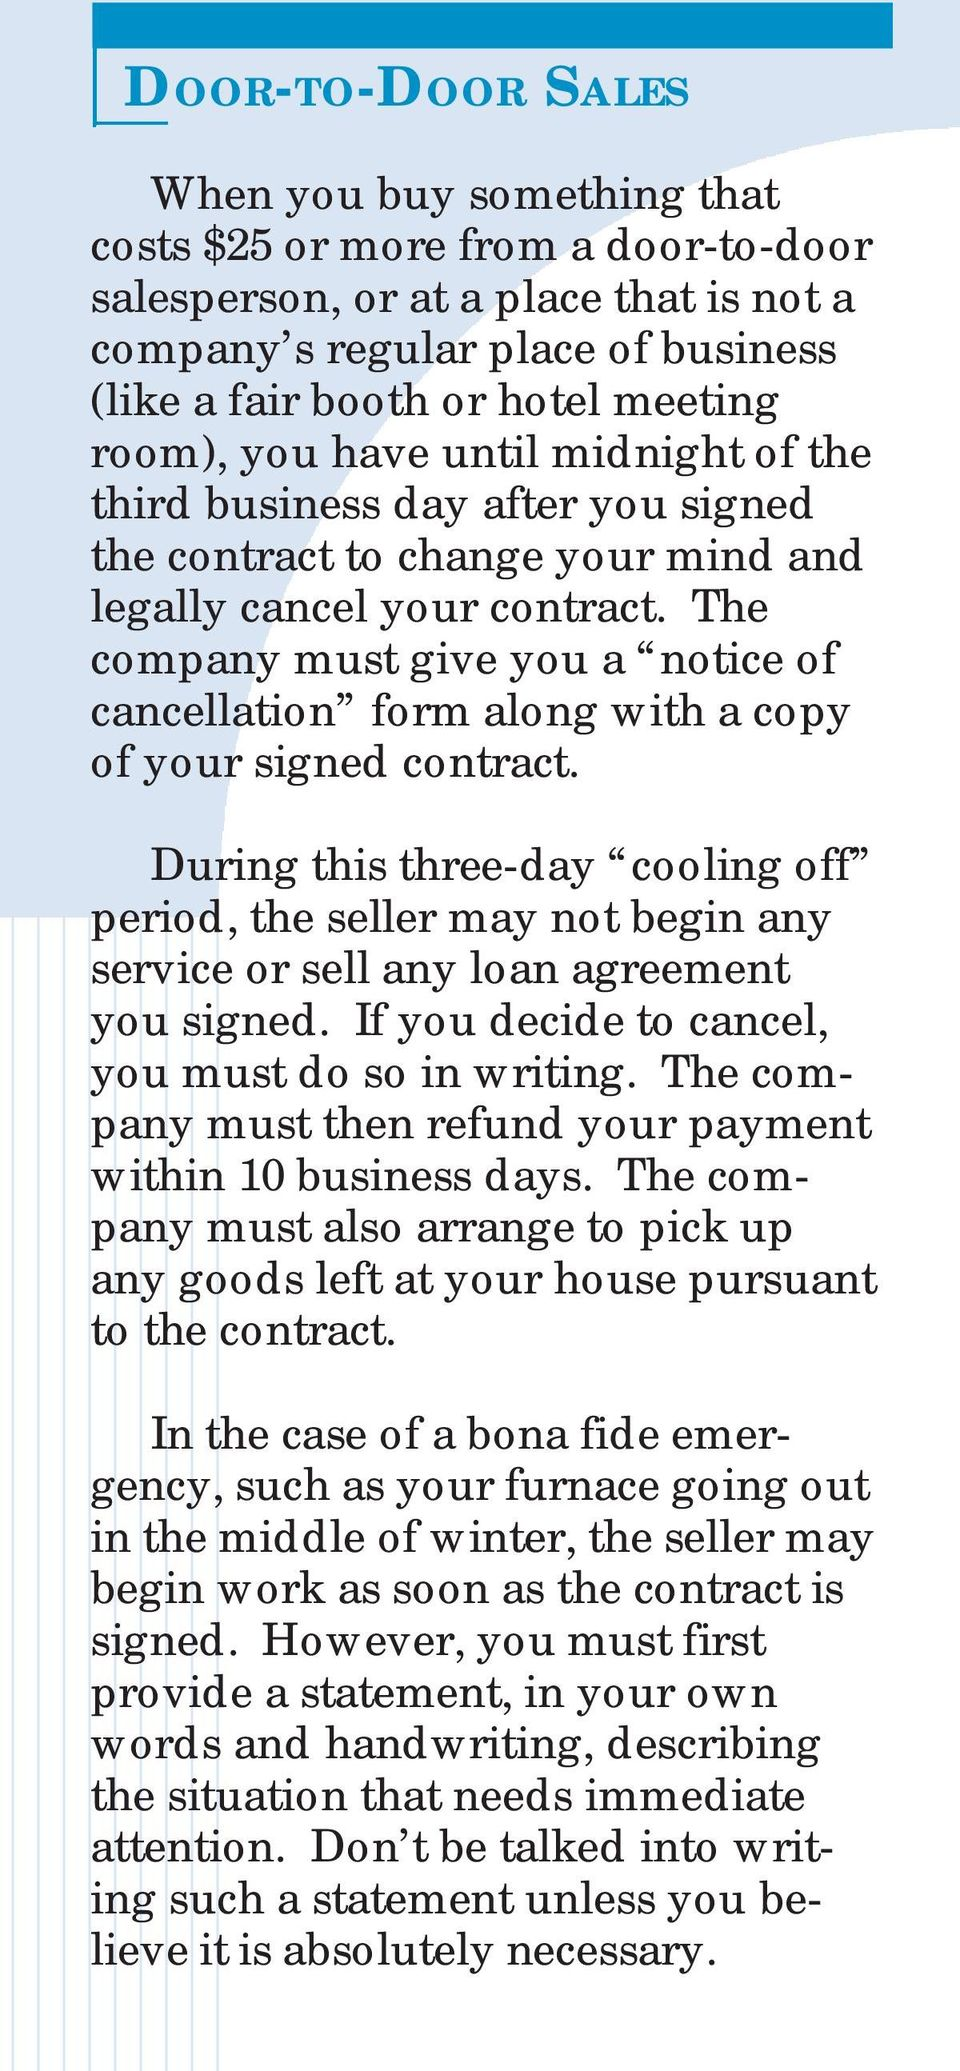 The company must give you a notice of cancellation form along with a copy of your signed contract.